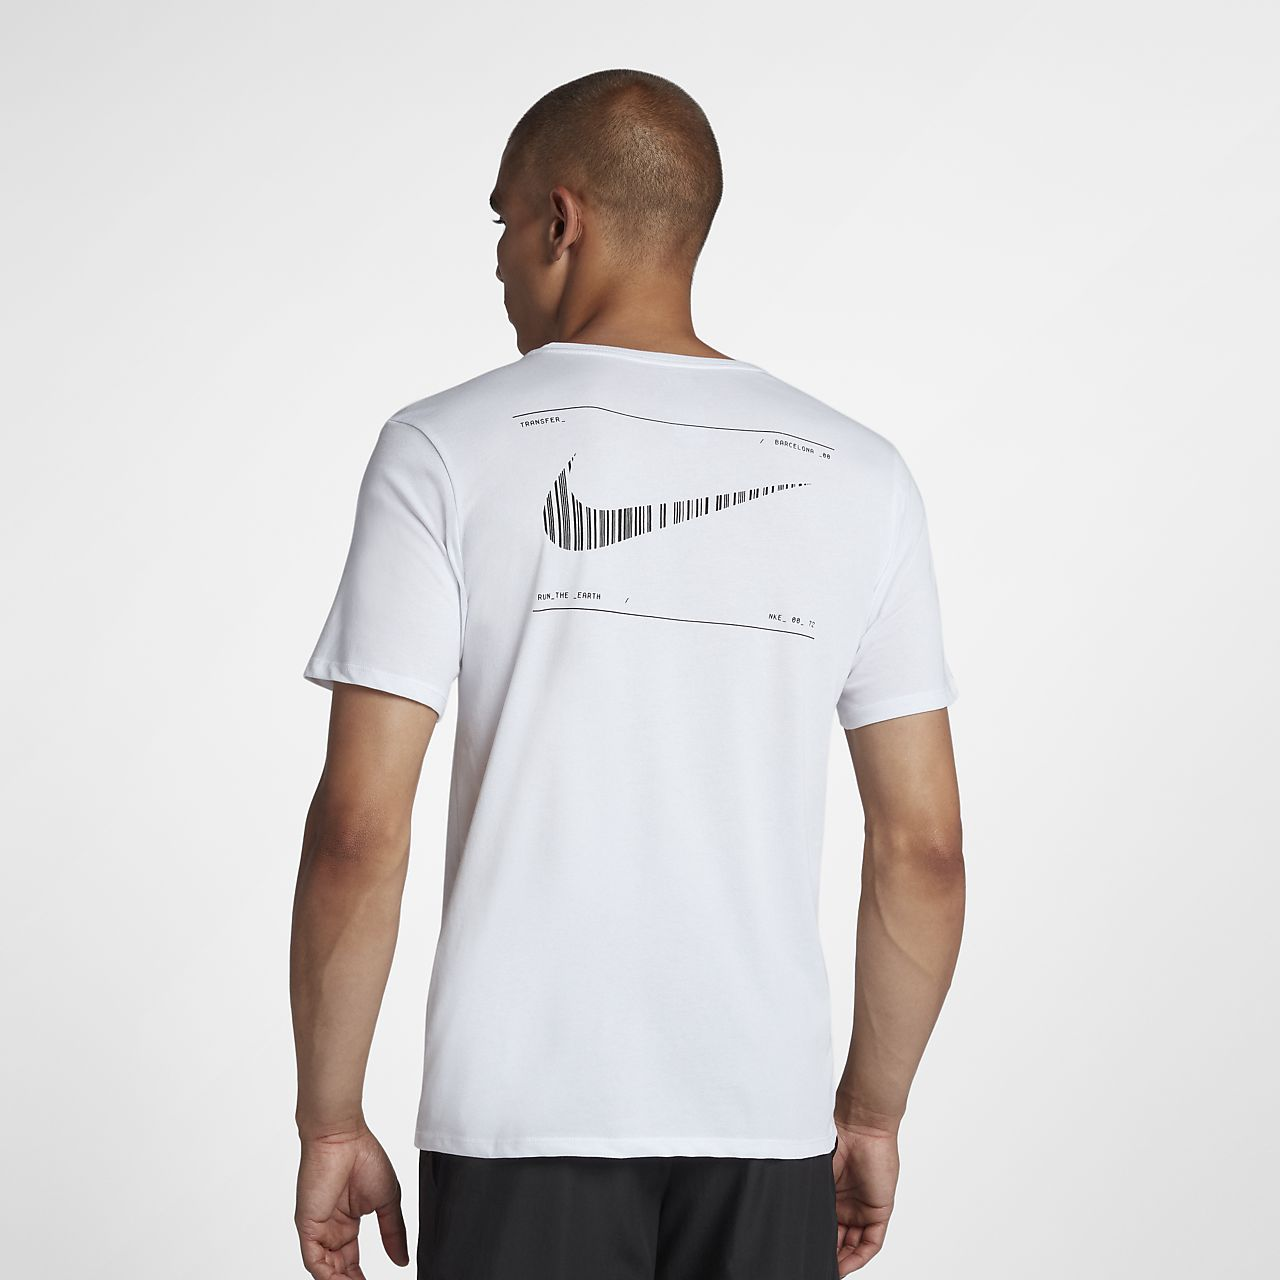 2a27646730e1 Nike Dri-FIT (Barcelona) Men s Running T-Shirt. Nike.com IL